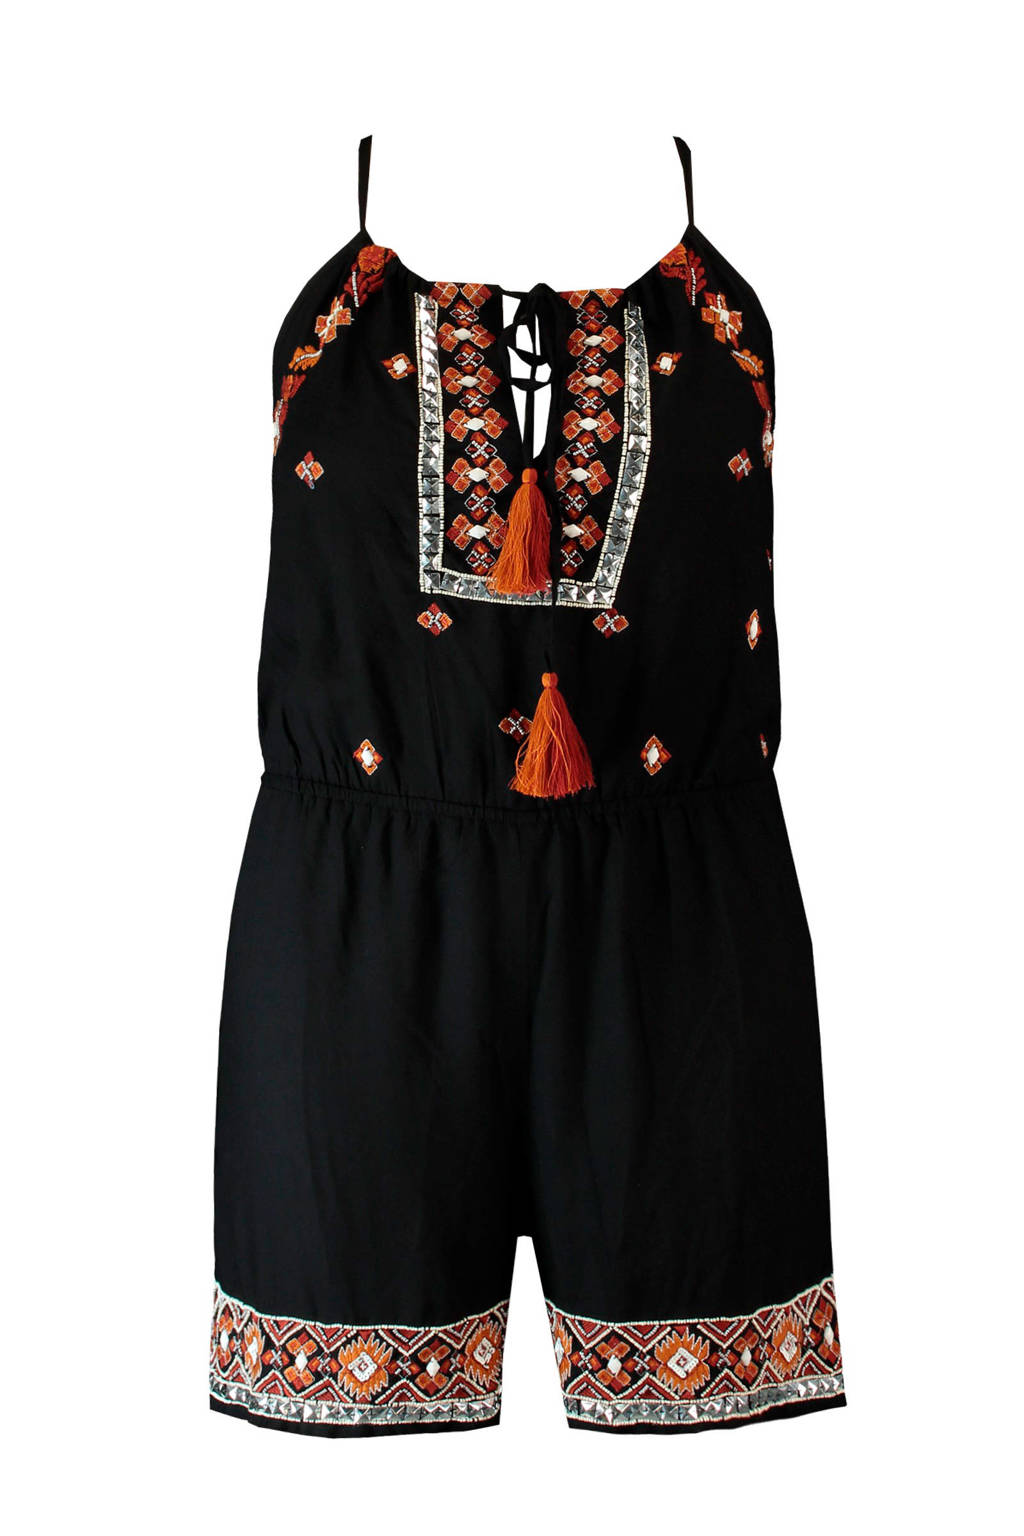 FSTVL by MS Mode playsuit met all over print en borduursels zwart, Zwart